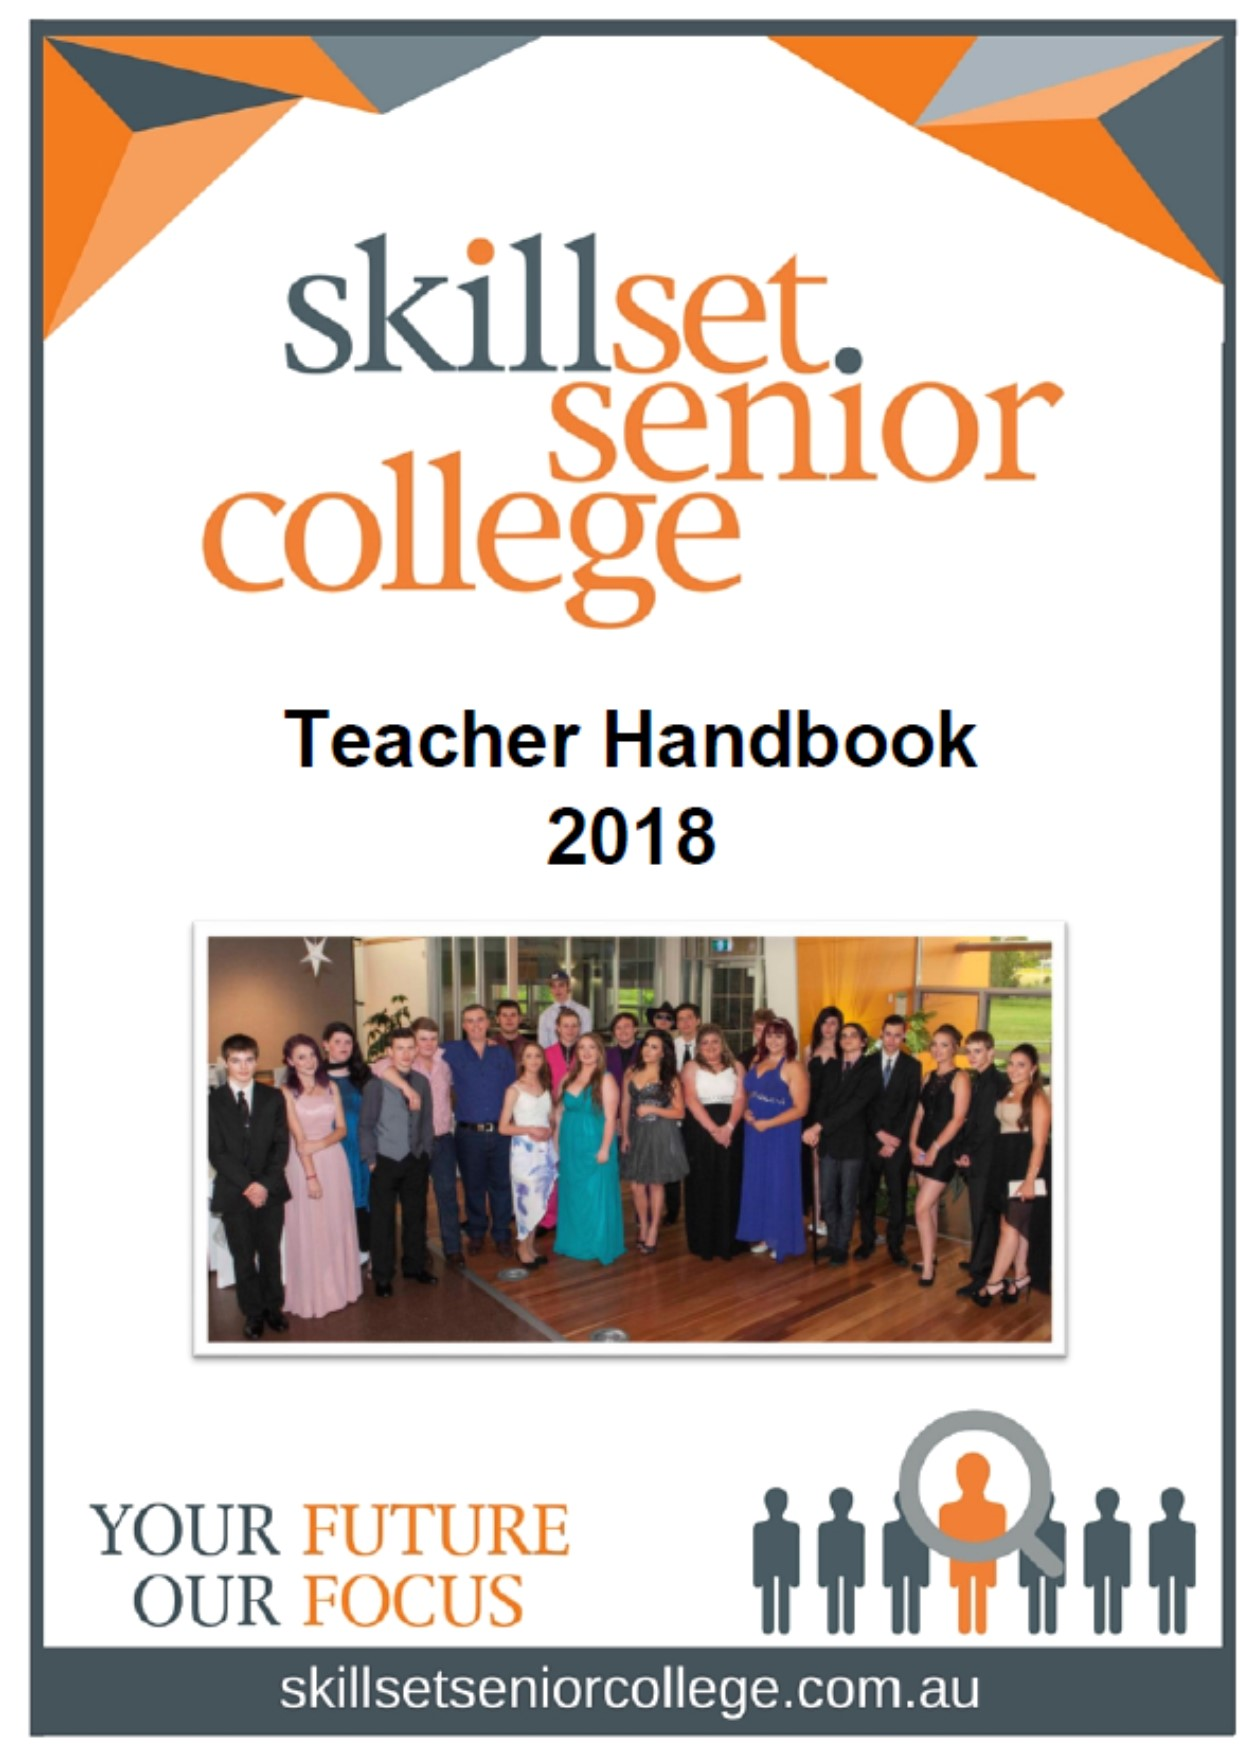 Click image - to download a PDF of the Teacher Handbook 2018